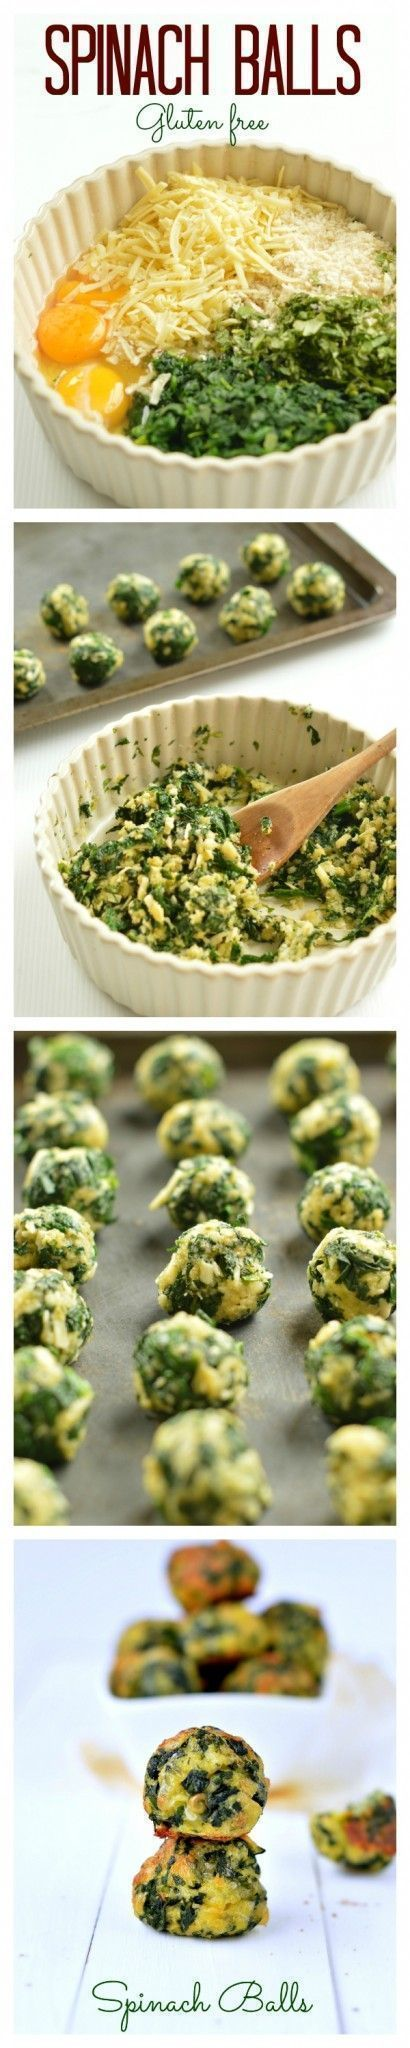 Spinach balls | clean eating spinach recipes | clean eating appetizers | spinach finger foods healthy